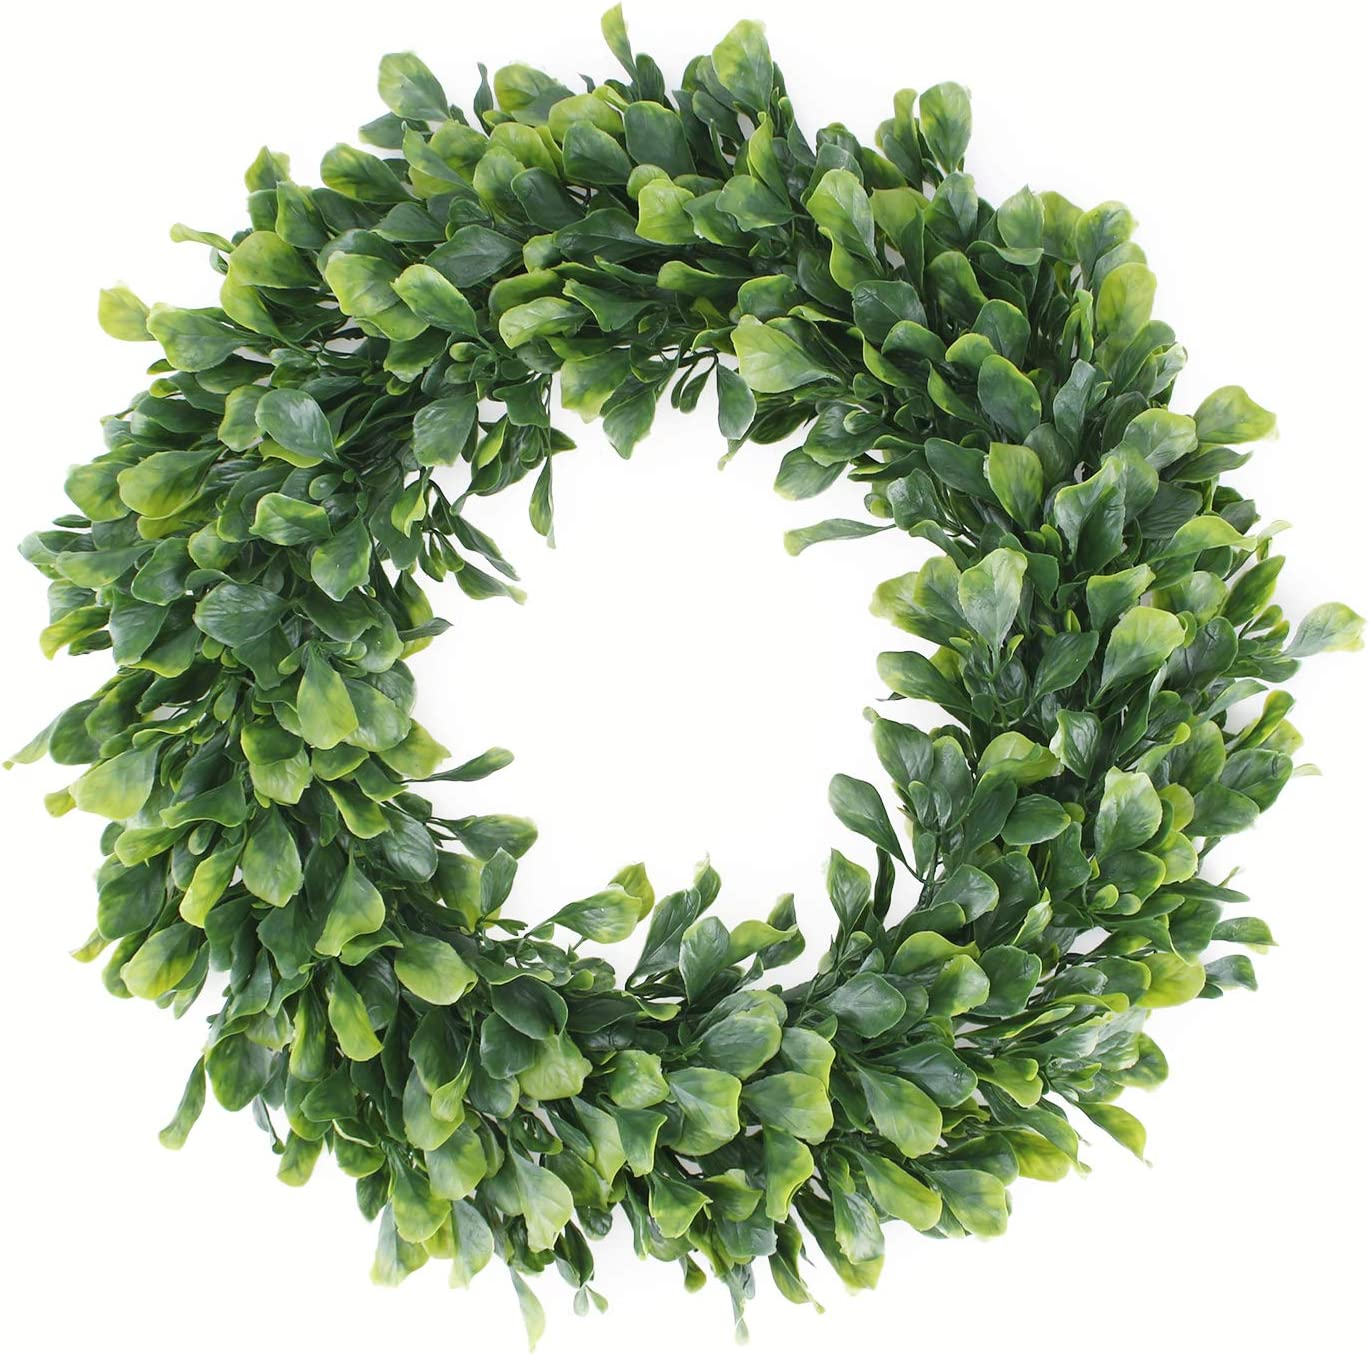 "Geboor Faux Boxwood Wreath, 15"" Artificial Green Leaves Wreath for Front Door Hanging Wall Windows Decoration Holiday Festival Wedding Decor"